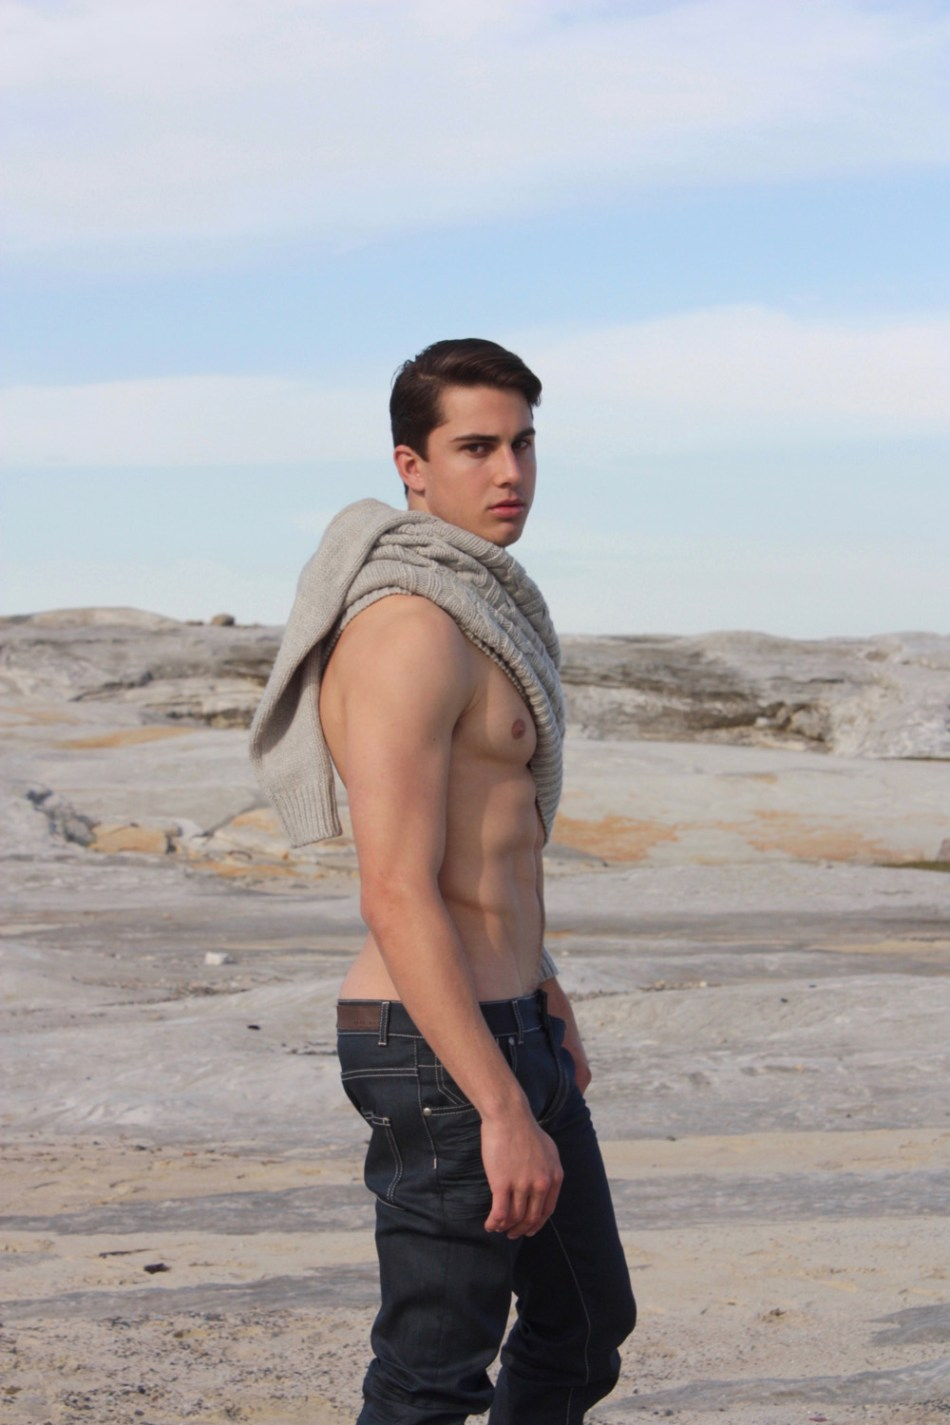 The handsome Matt Roskvist beautifully portrayed in the great outdoors by photographer Paul Smollen.